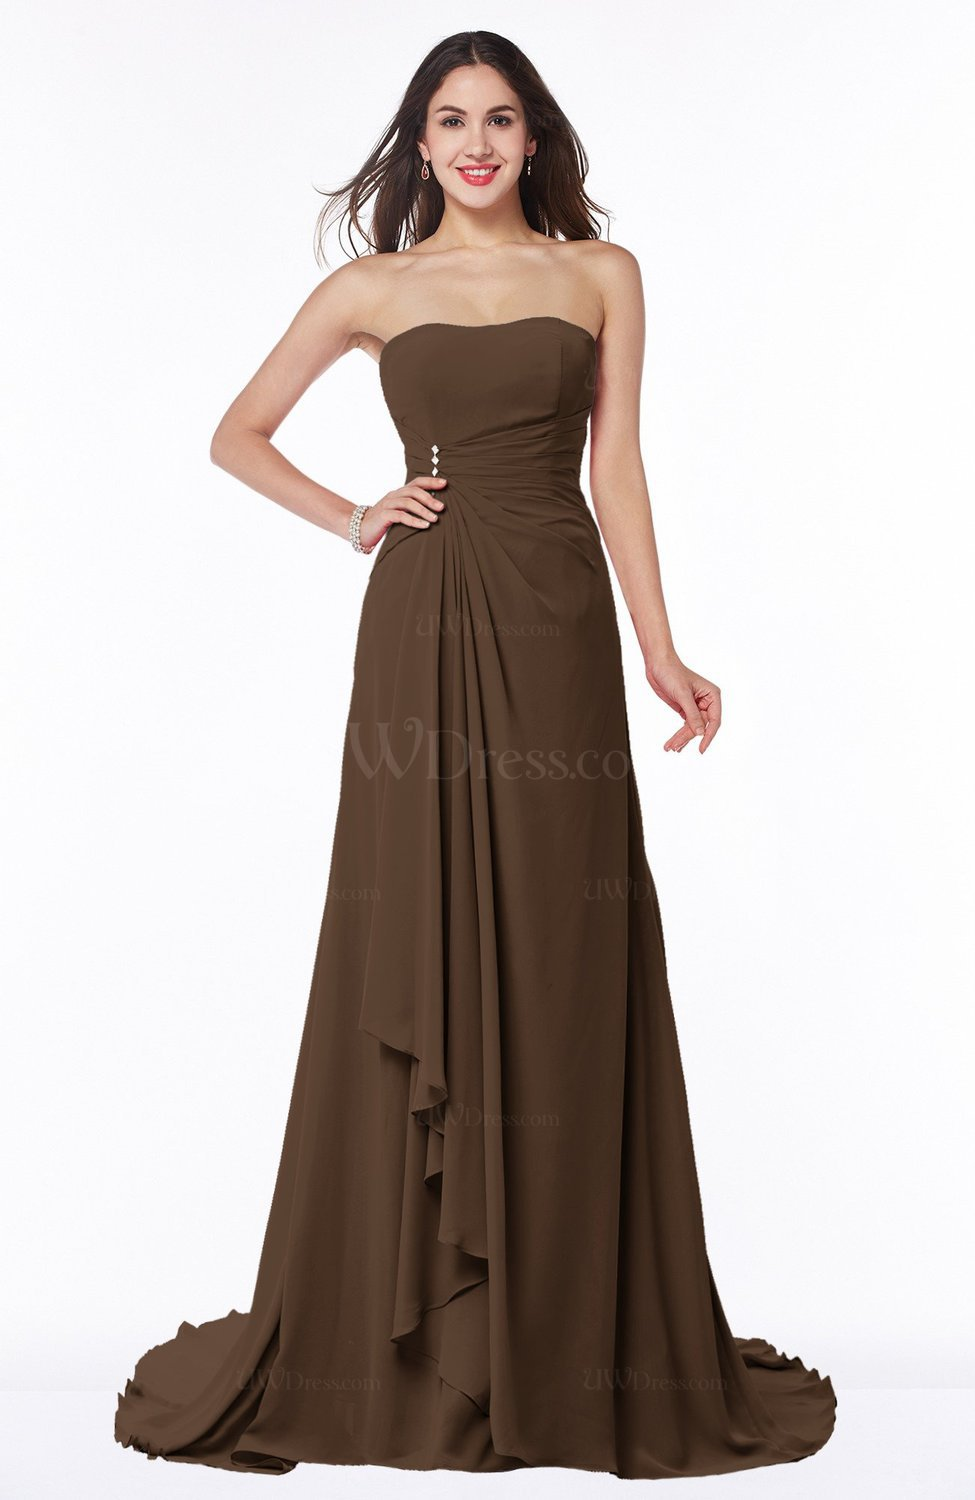 Prom dresses archives page 415 of 515 holiday dresses brown plus size bridesmaid dresses 40 ombrellifo Images